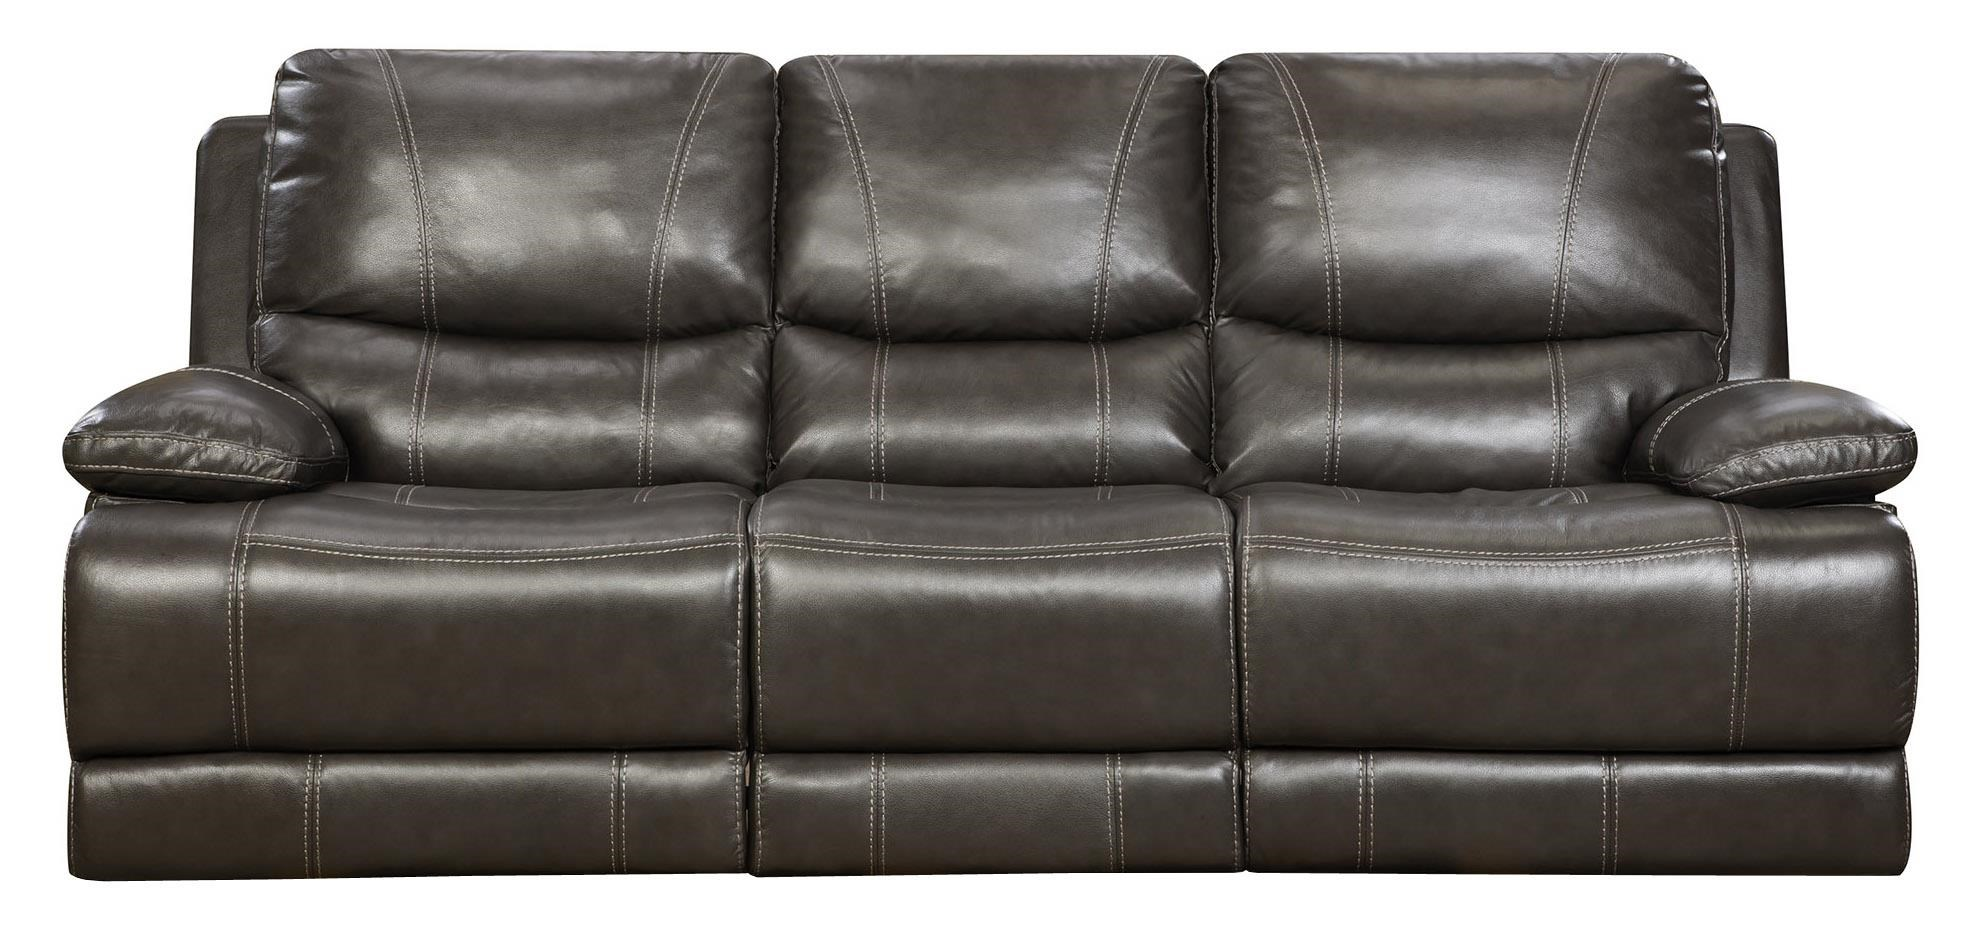 Corinthian 42801 Power Reclining Sofa With Casual Contemporary Style